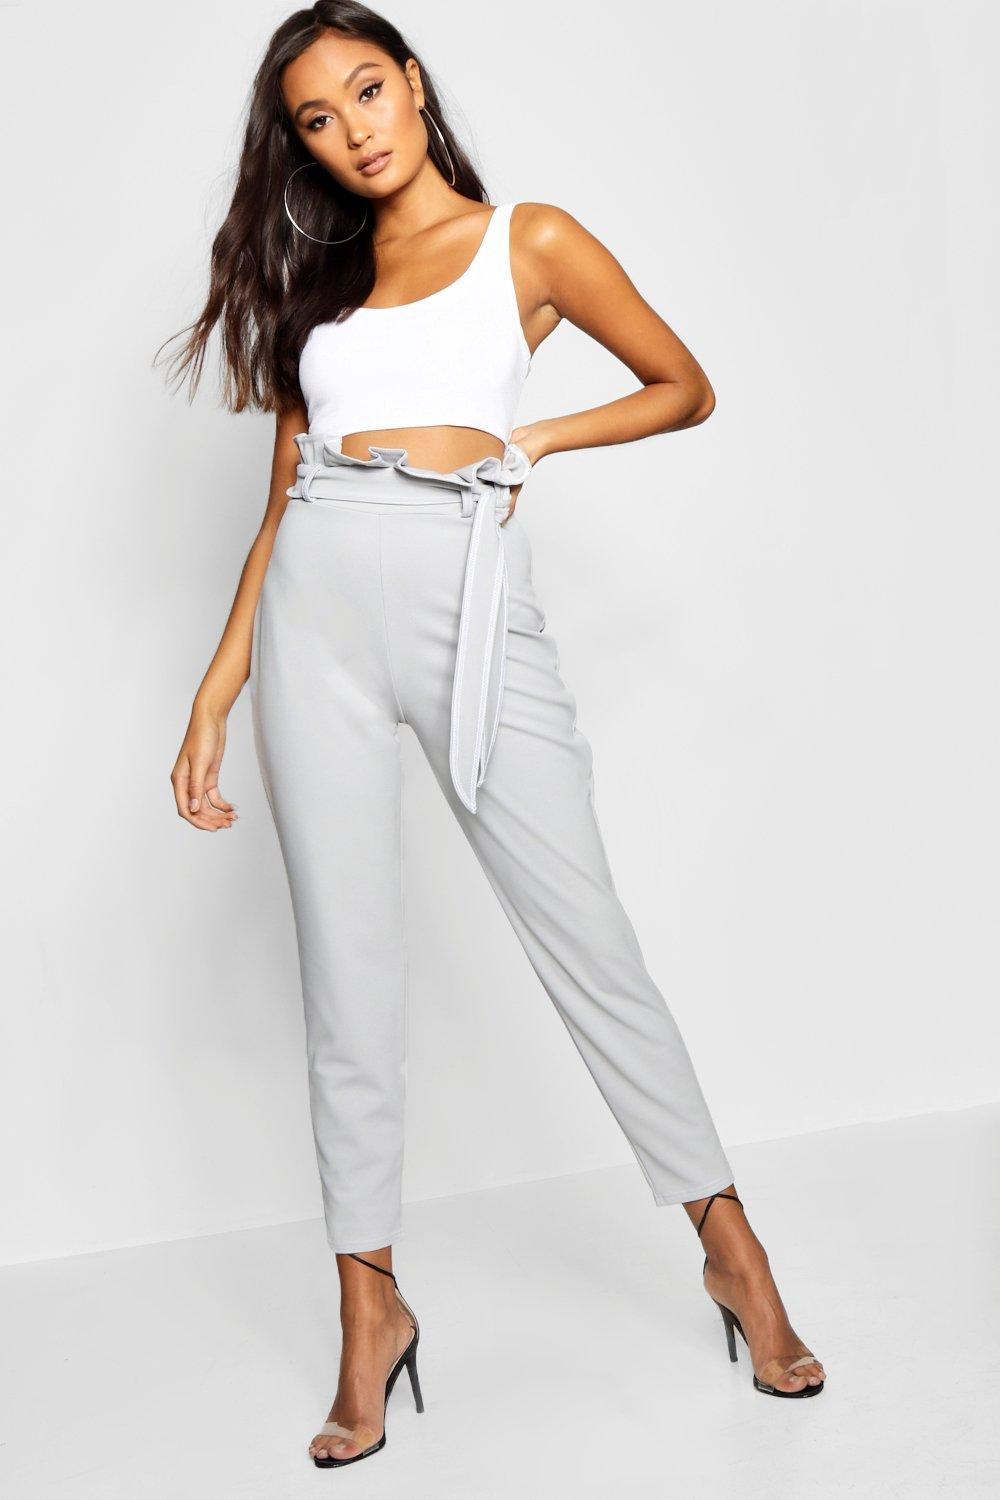 grey Paperbag Contrast Stitch Skinny Trouser qUcaHHpwB